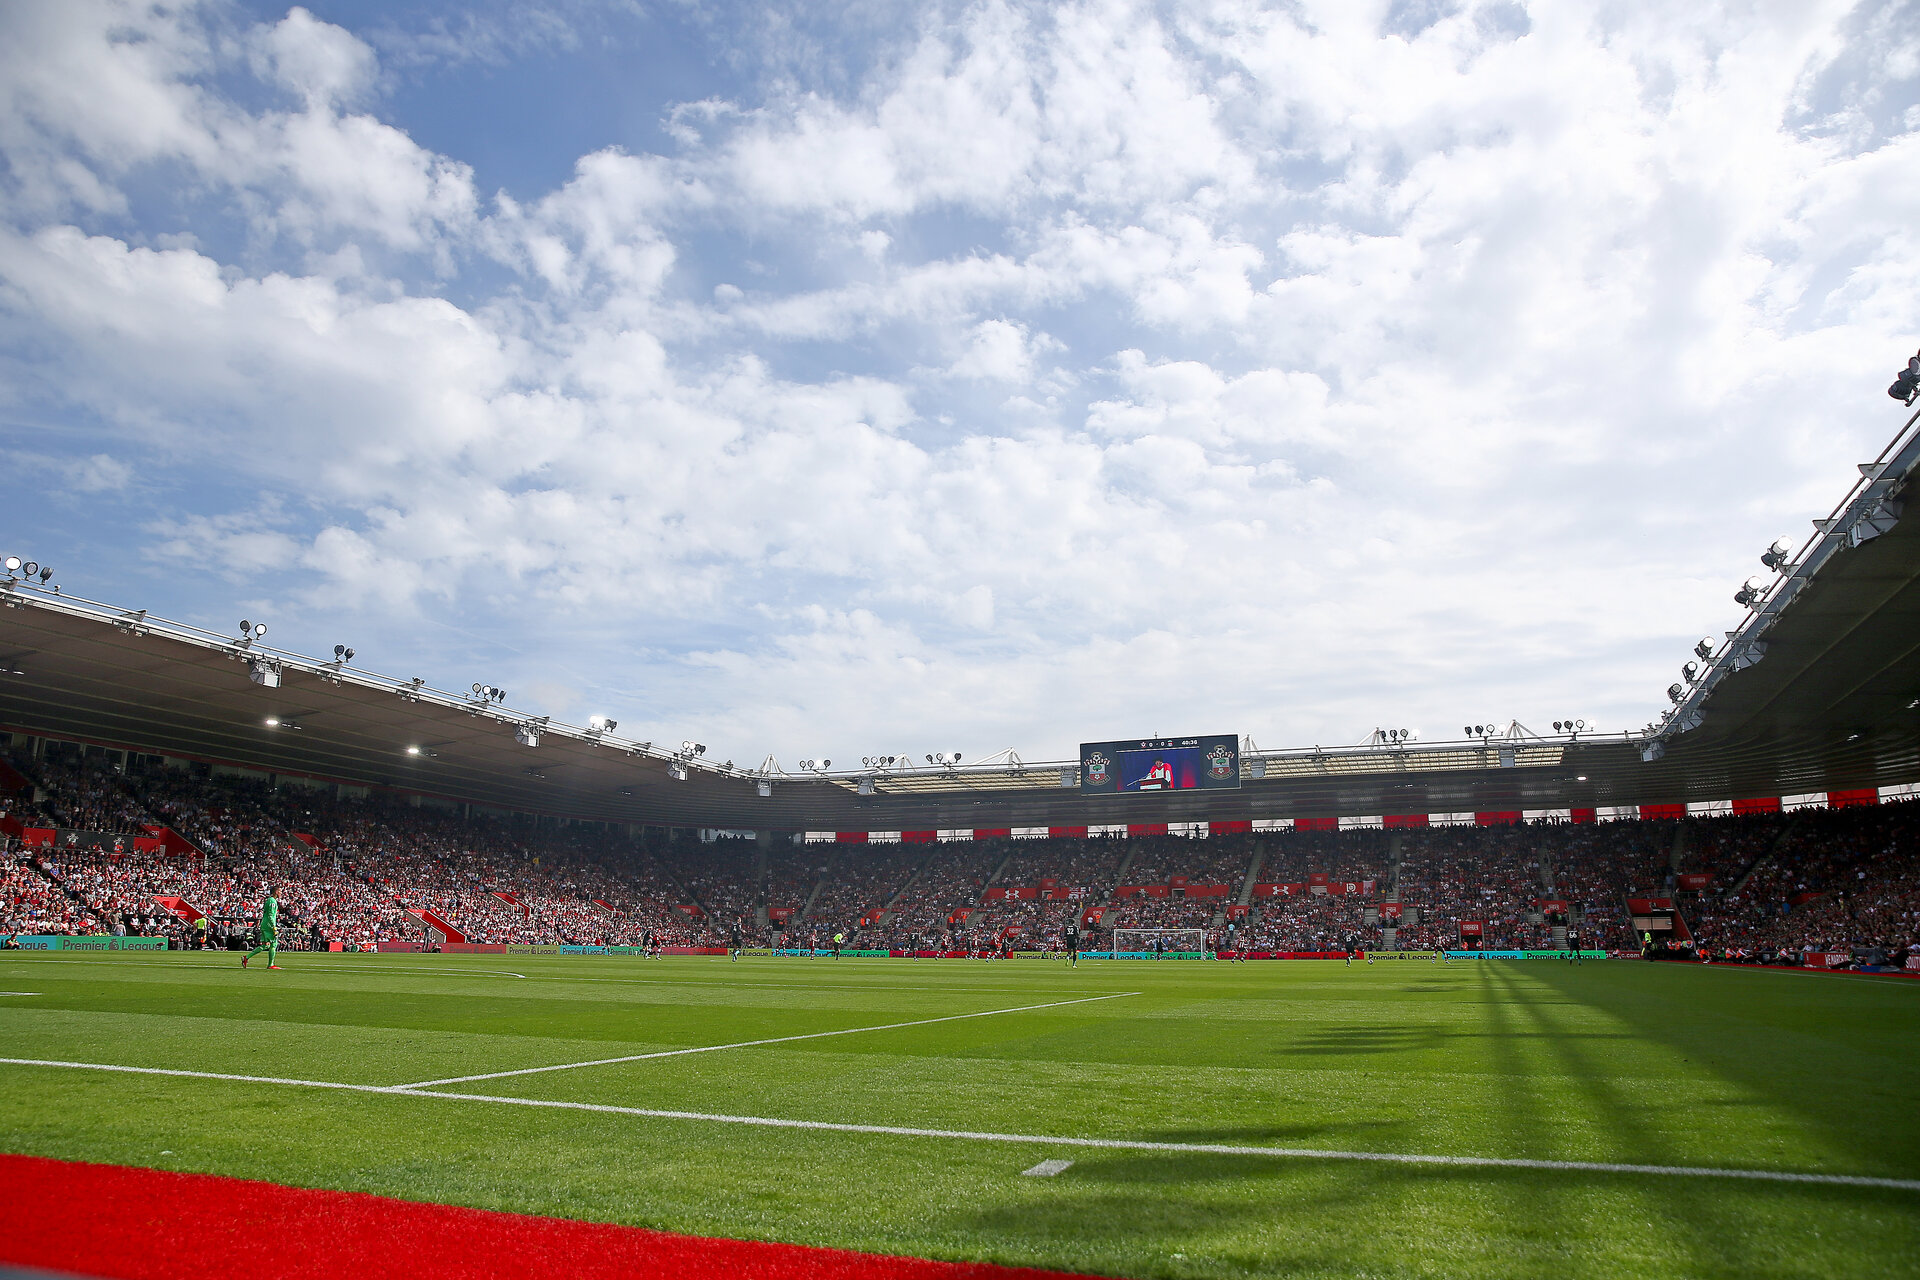 SOUTHAMPTON, ENGLAND - AUGUST 17: A general view during the Premier League match between Southampton FC and Liverpool FC at St Mary's Stadium on August 17, 2019 in Southampton, United Kingdom. (Photo by Matt Watson/Southampton FC via Getty Images)